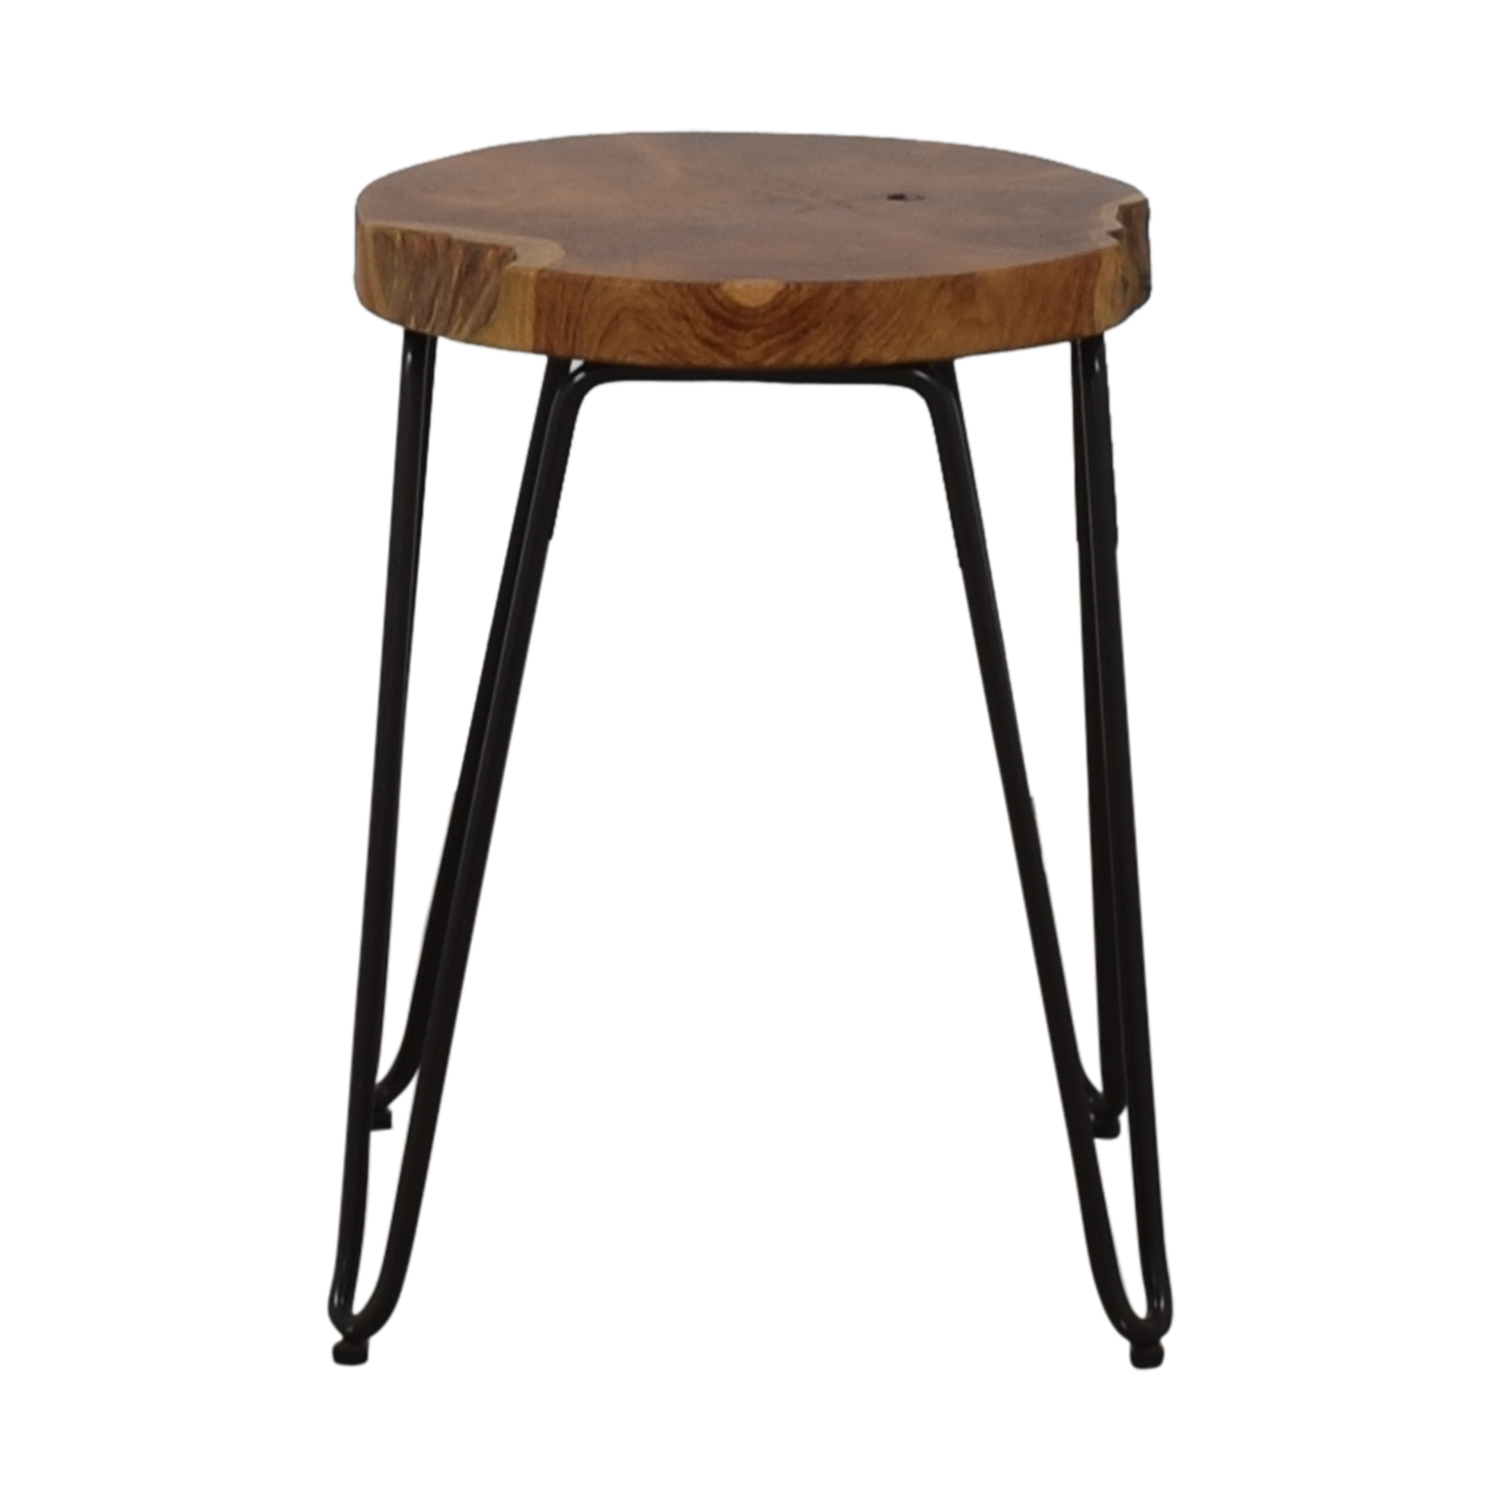 shop Crate & Barrel Distressed Wood Stool Crate & Barrel